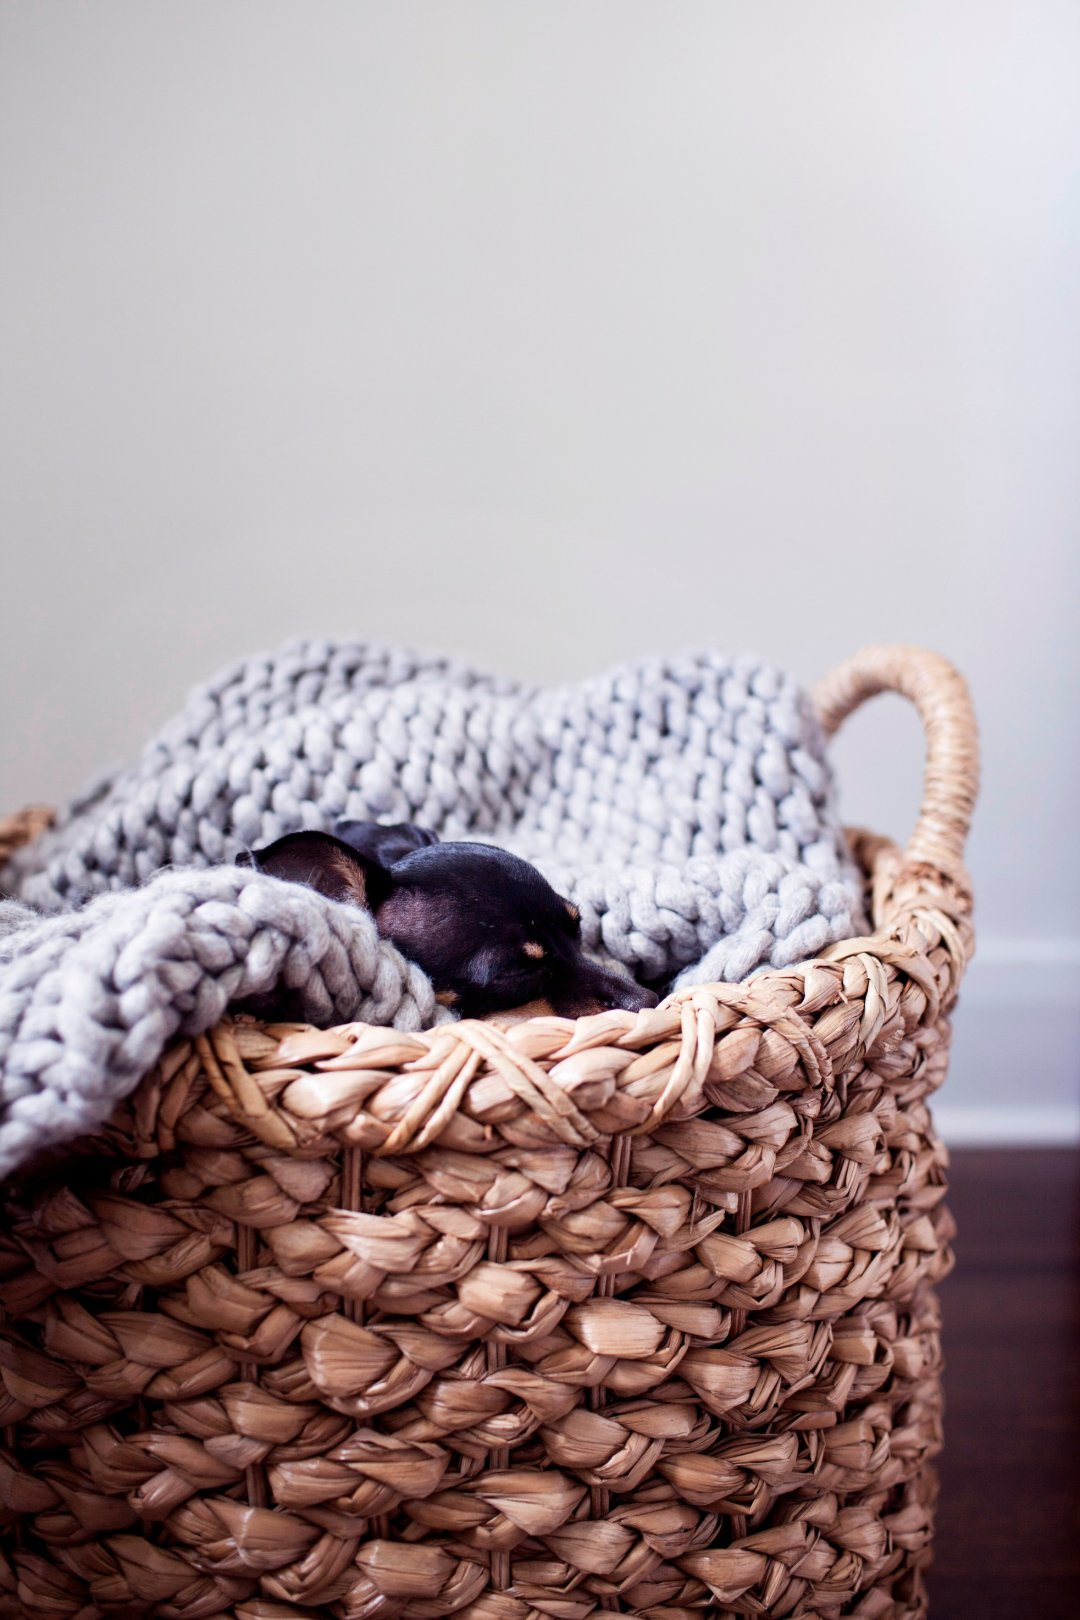 Dog in basket with blanket